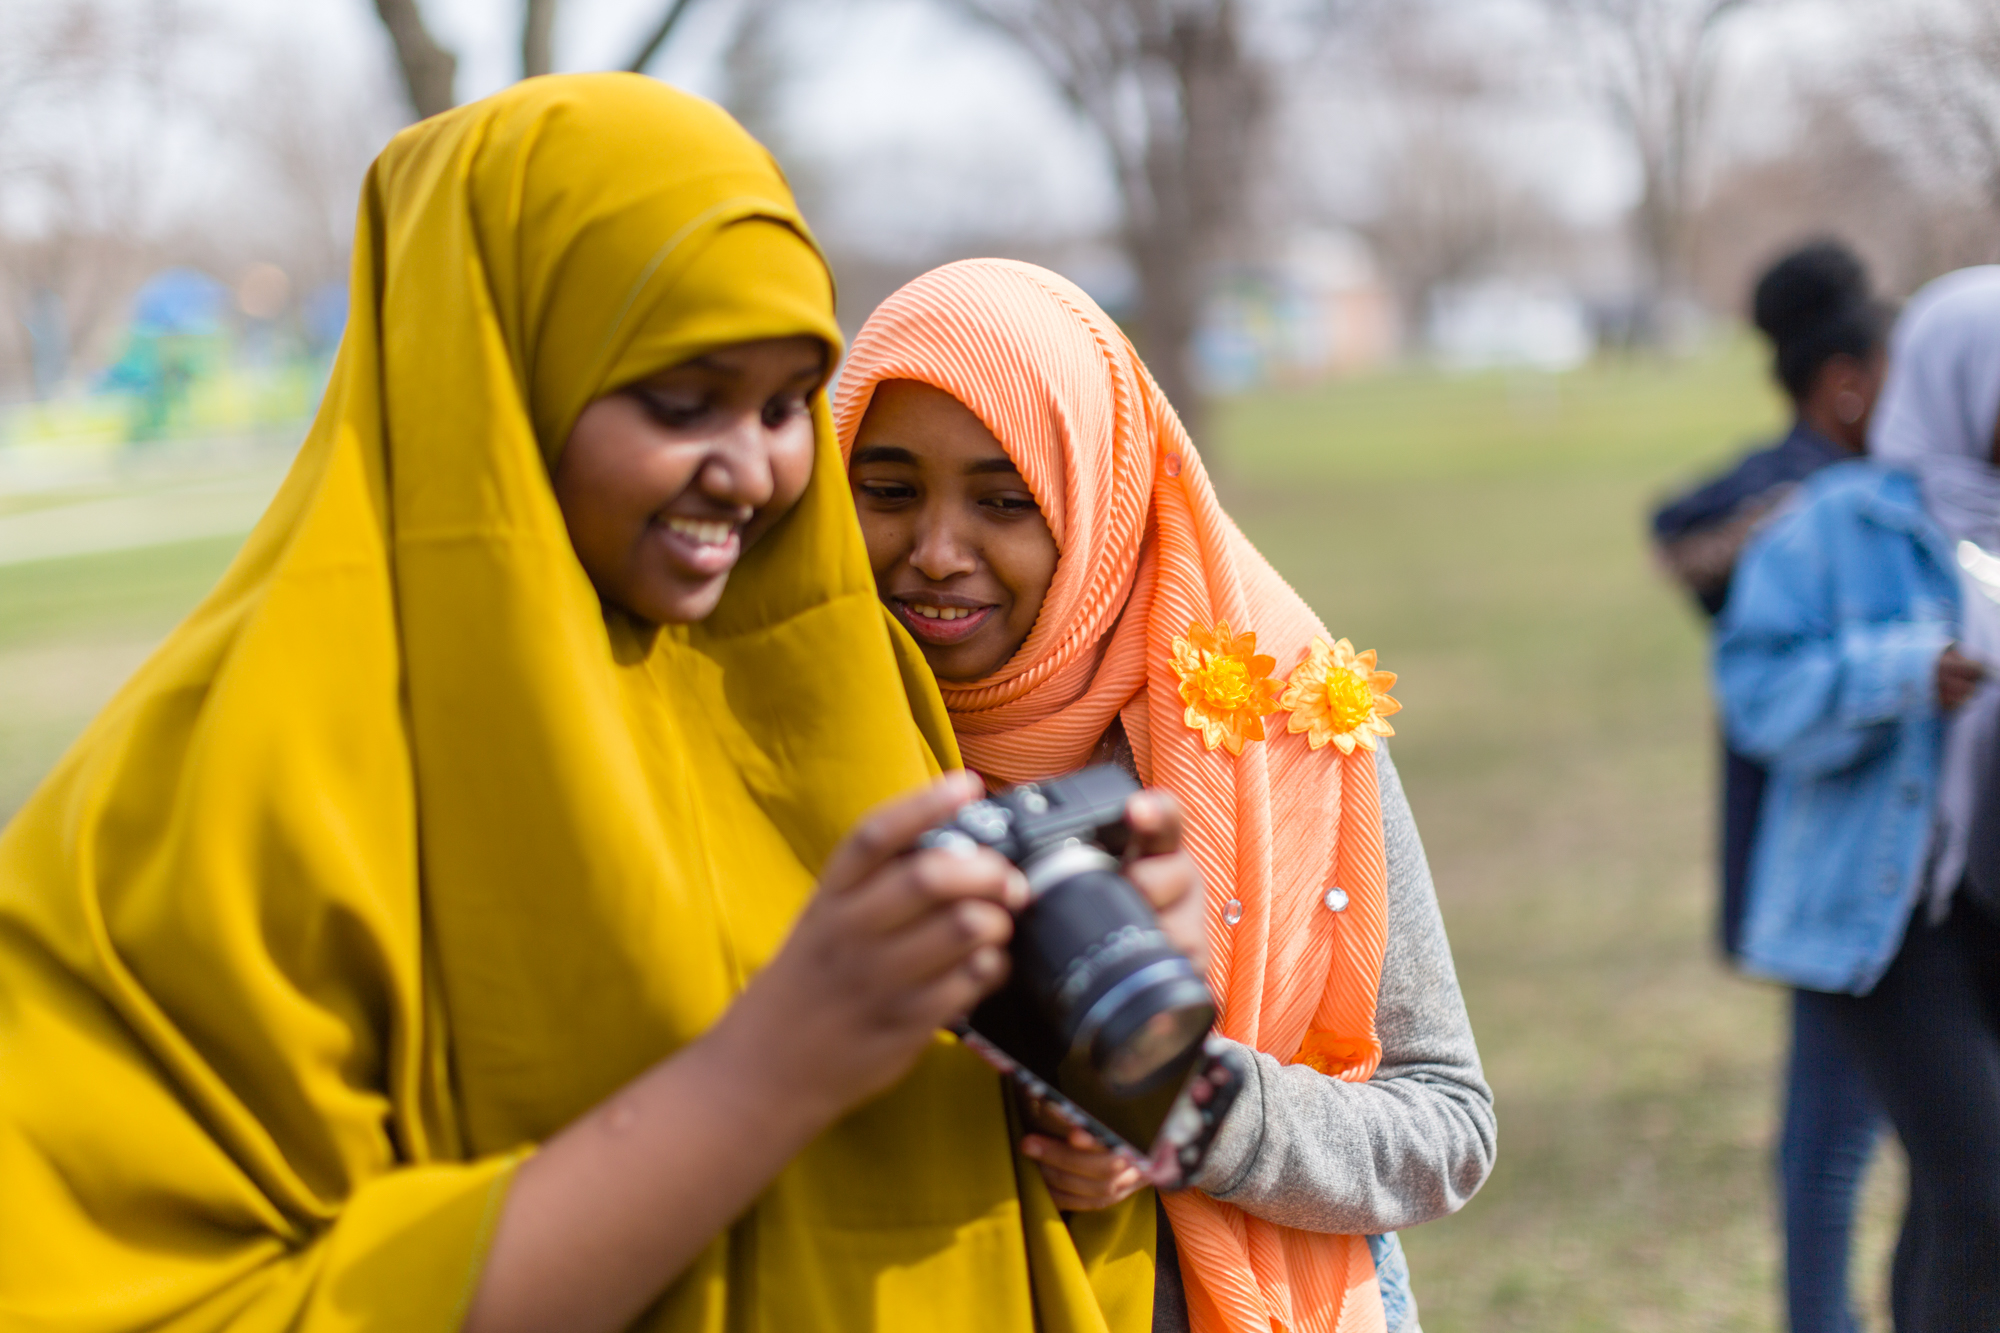 Snapshot Omaha is a part of a 8 class course that is   custom designed by 100cameras to equip passionate creatives with the tools to empower kids   in a community they care about with the opportunity to learn how to process their stories and create change.